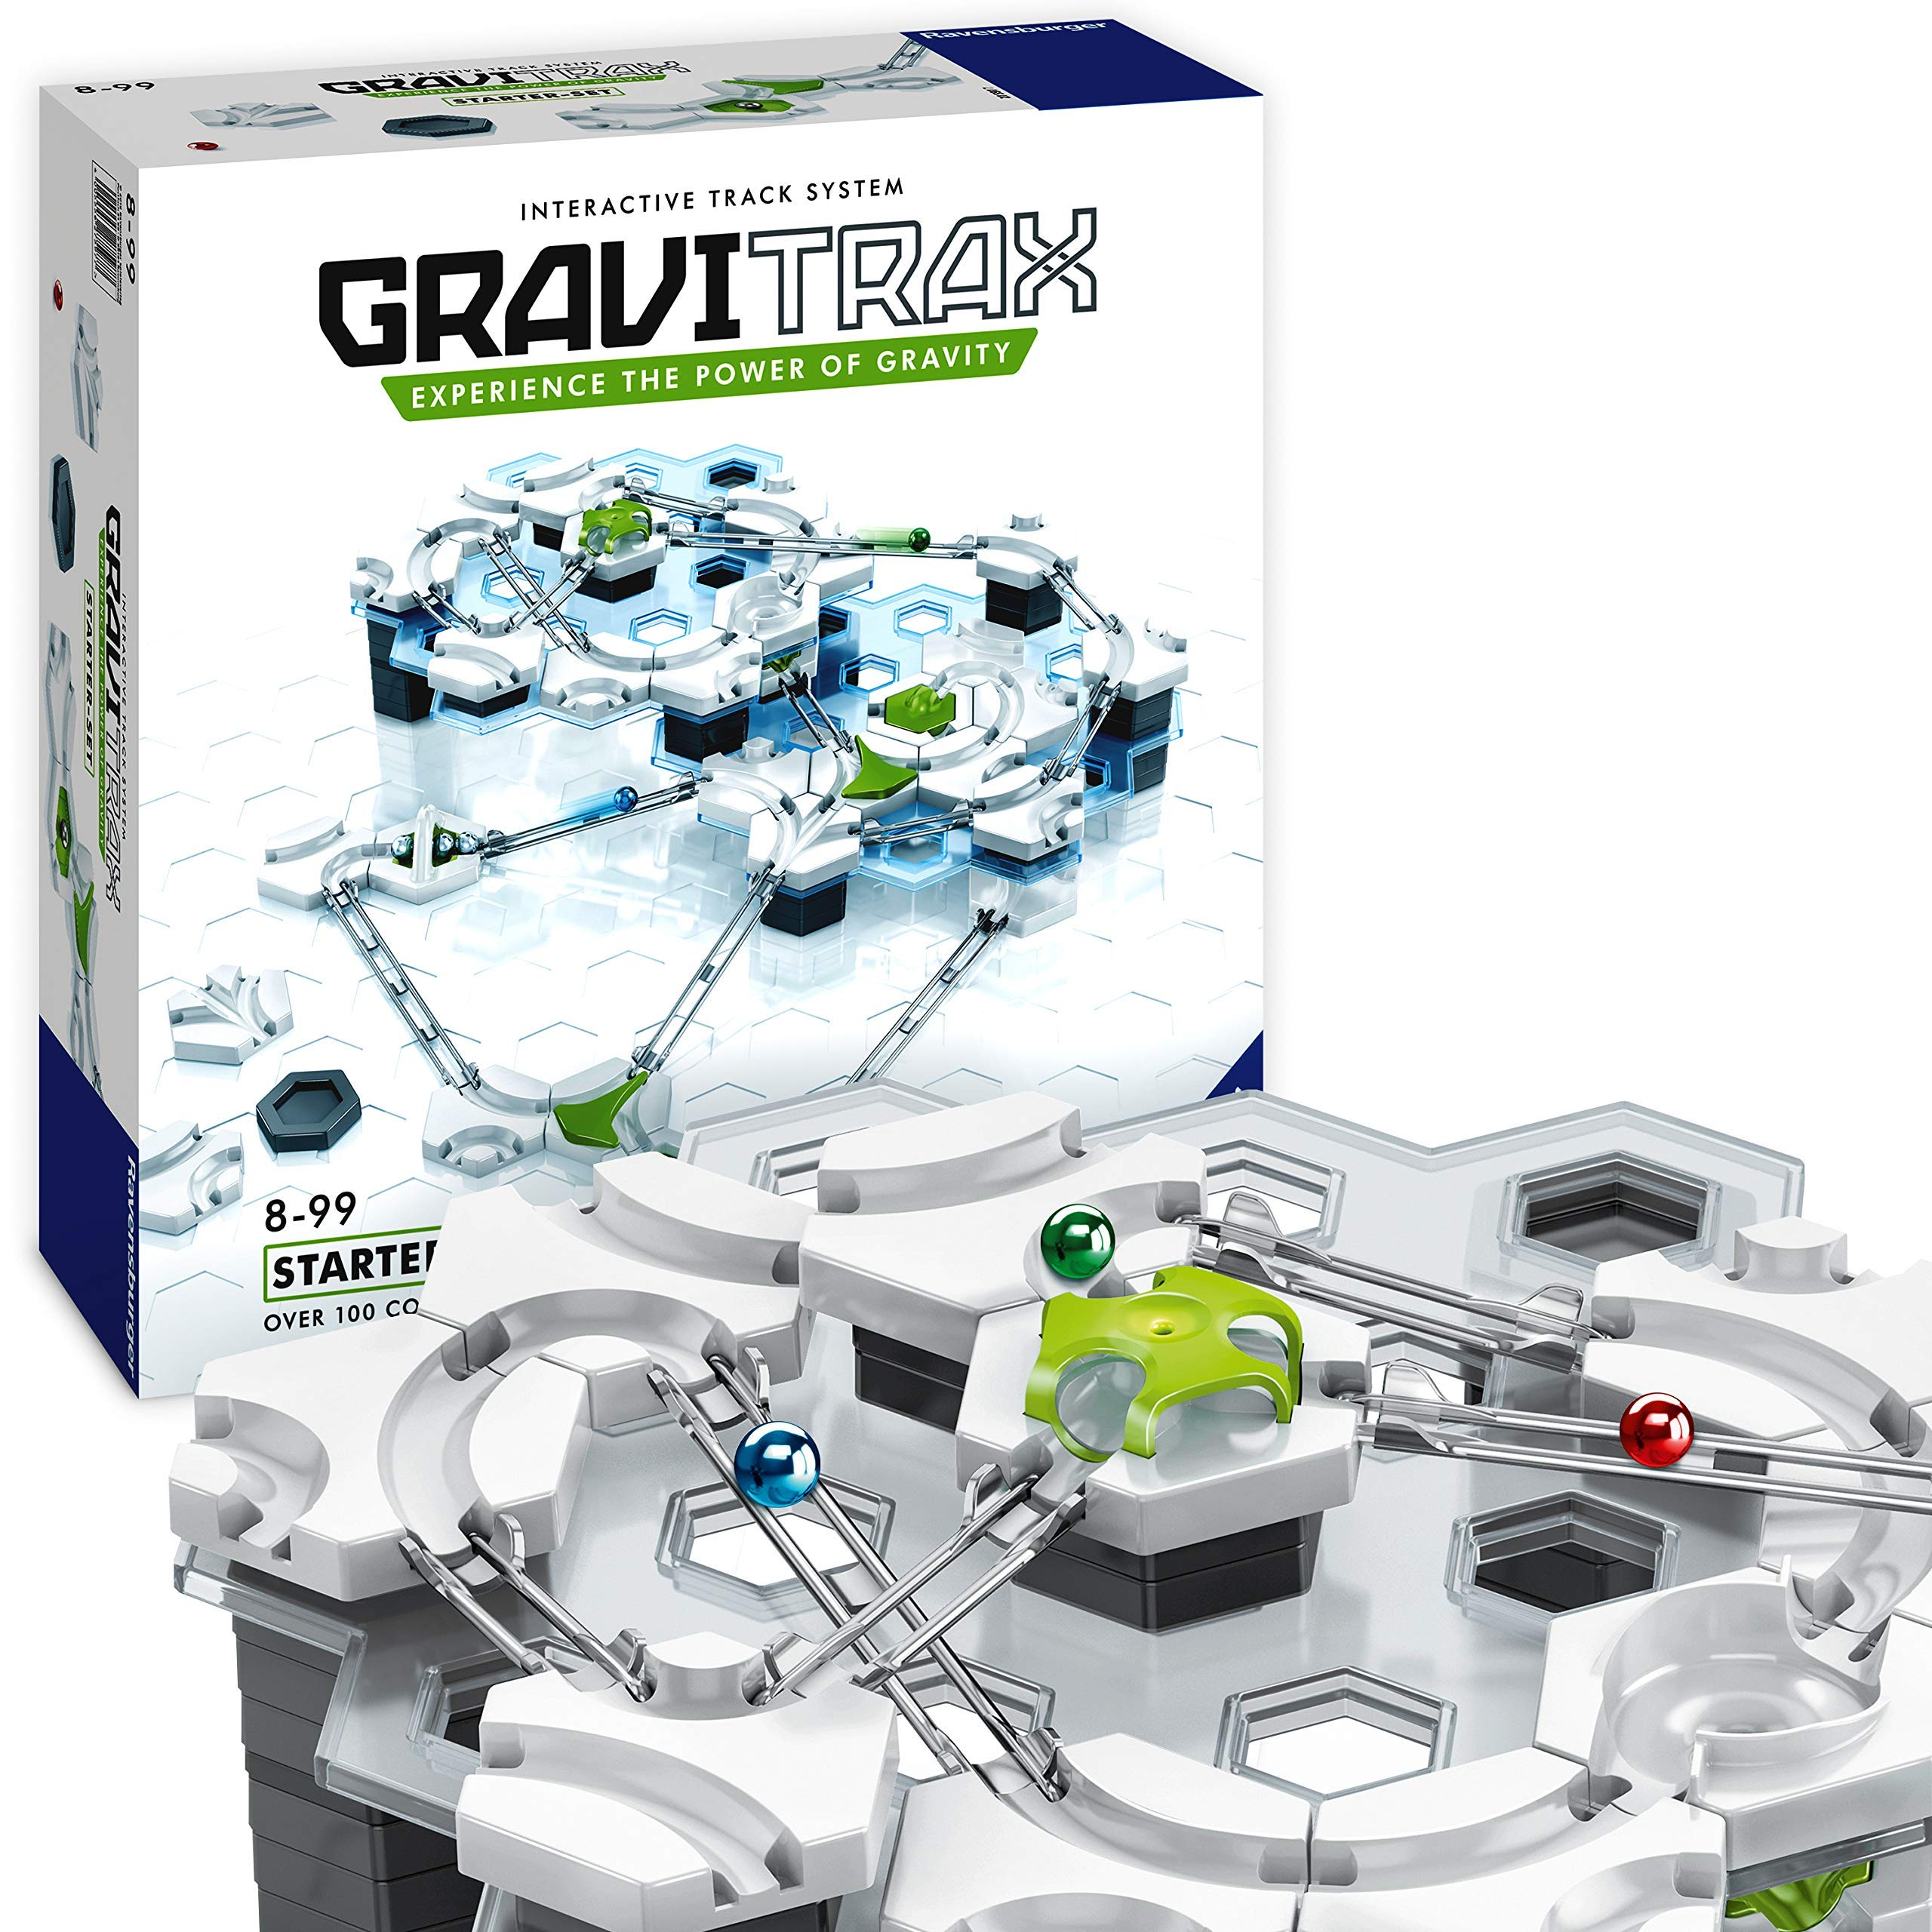 Ravensburger Gravitrax Starter Set Marble Run & STEM Toy For Boys & Girls Age 8 & Up - 2019 Toy of The Year Finalist by Ravensburger